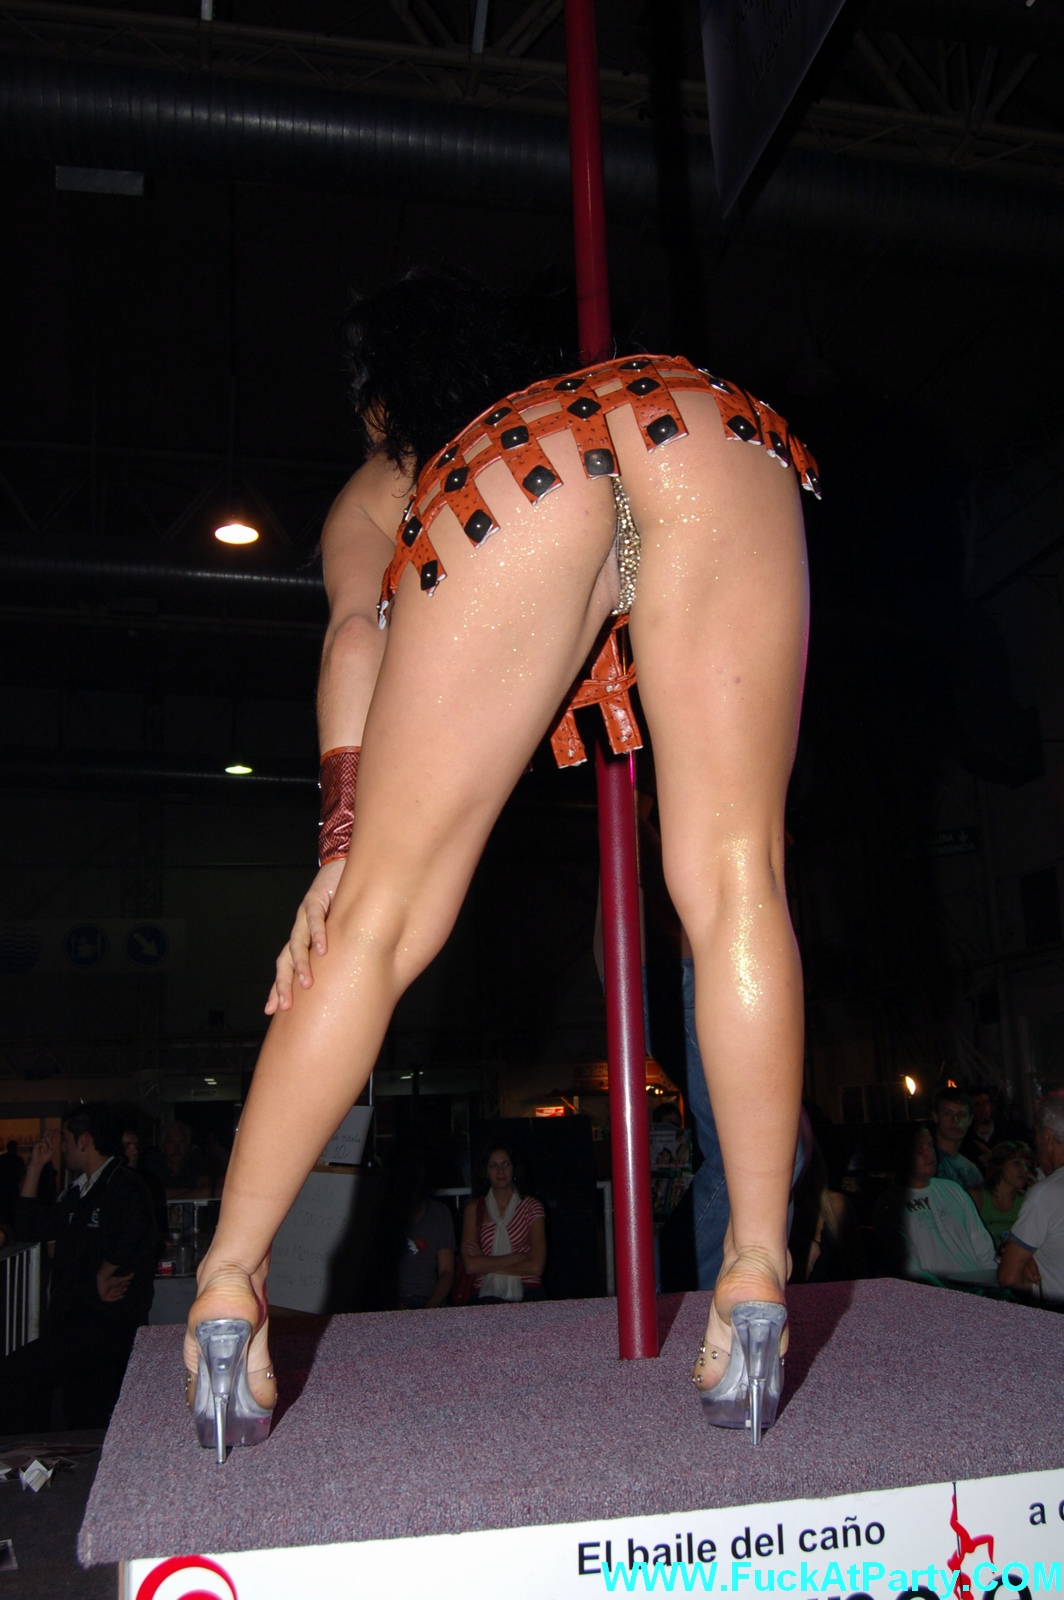 Asian pole dancing - Nude Images